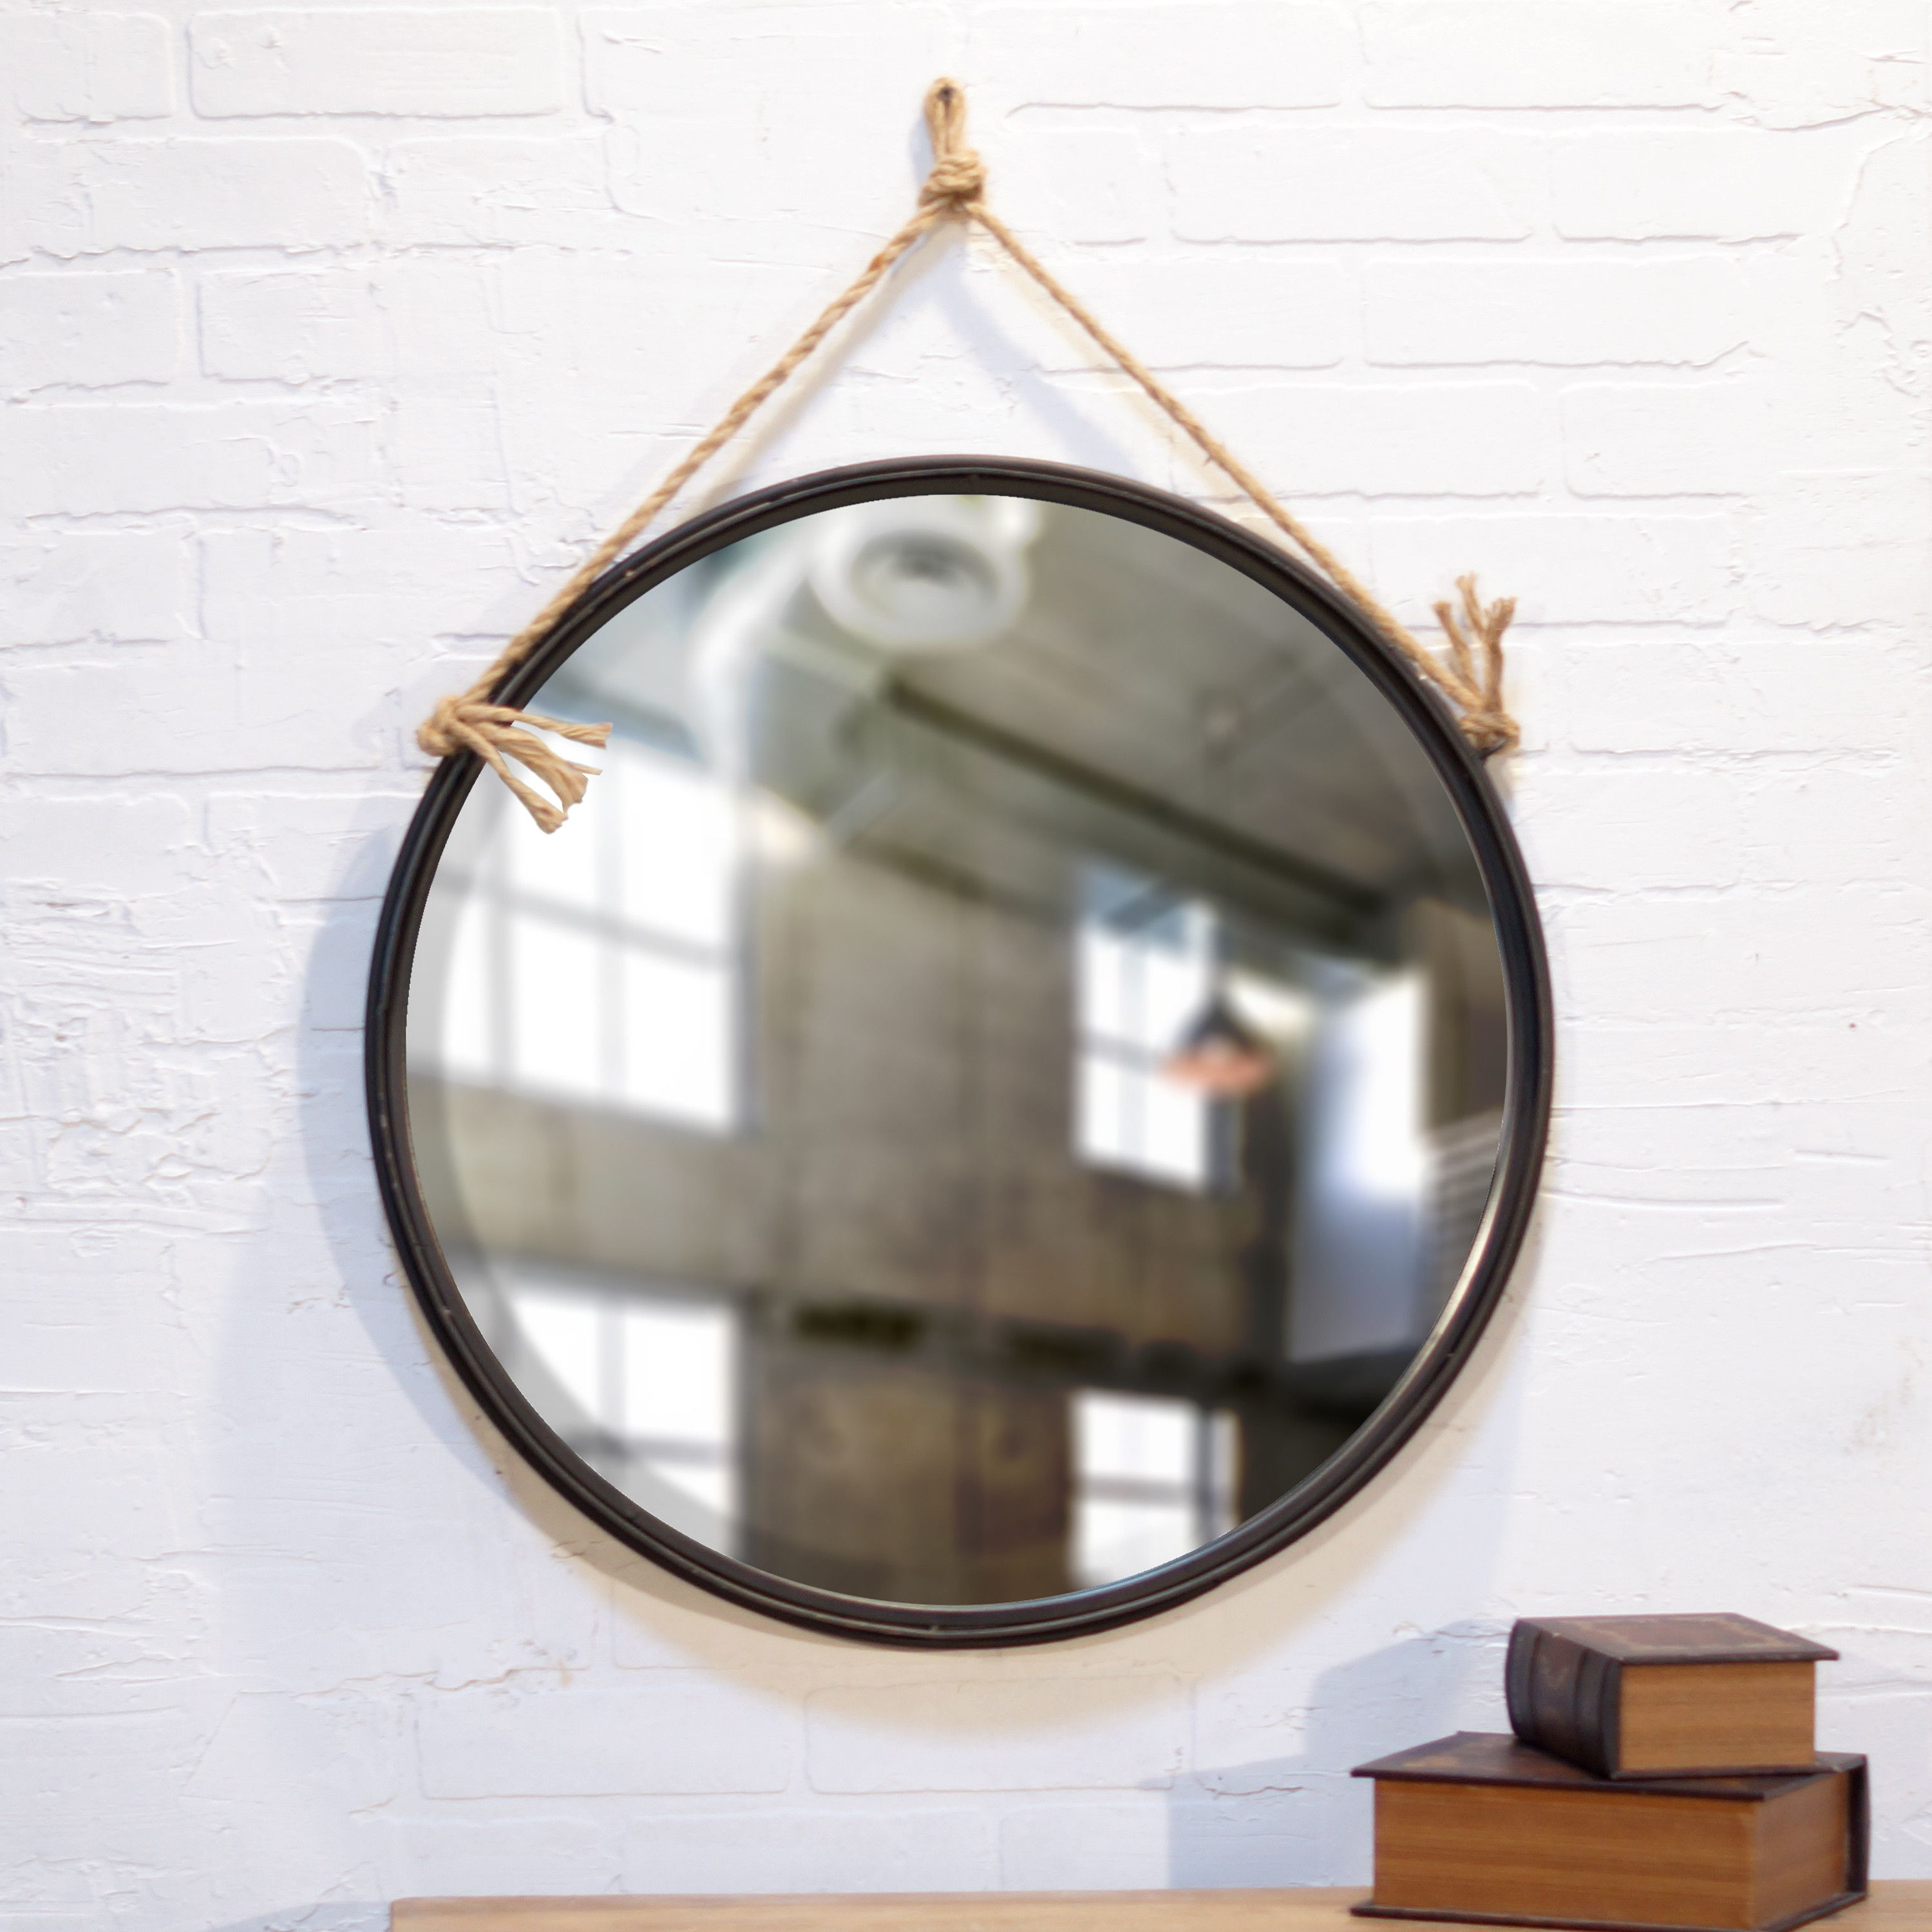 Round Metal Mirror With Rope Part - 50: American Mercantile Metal Round Rope Hanging Mirror